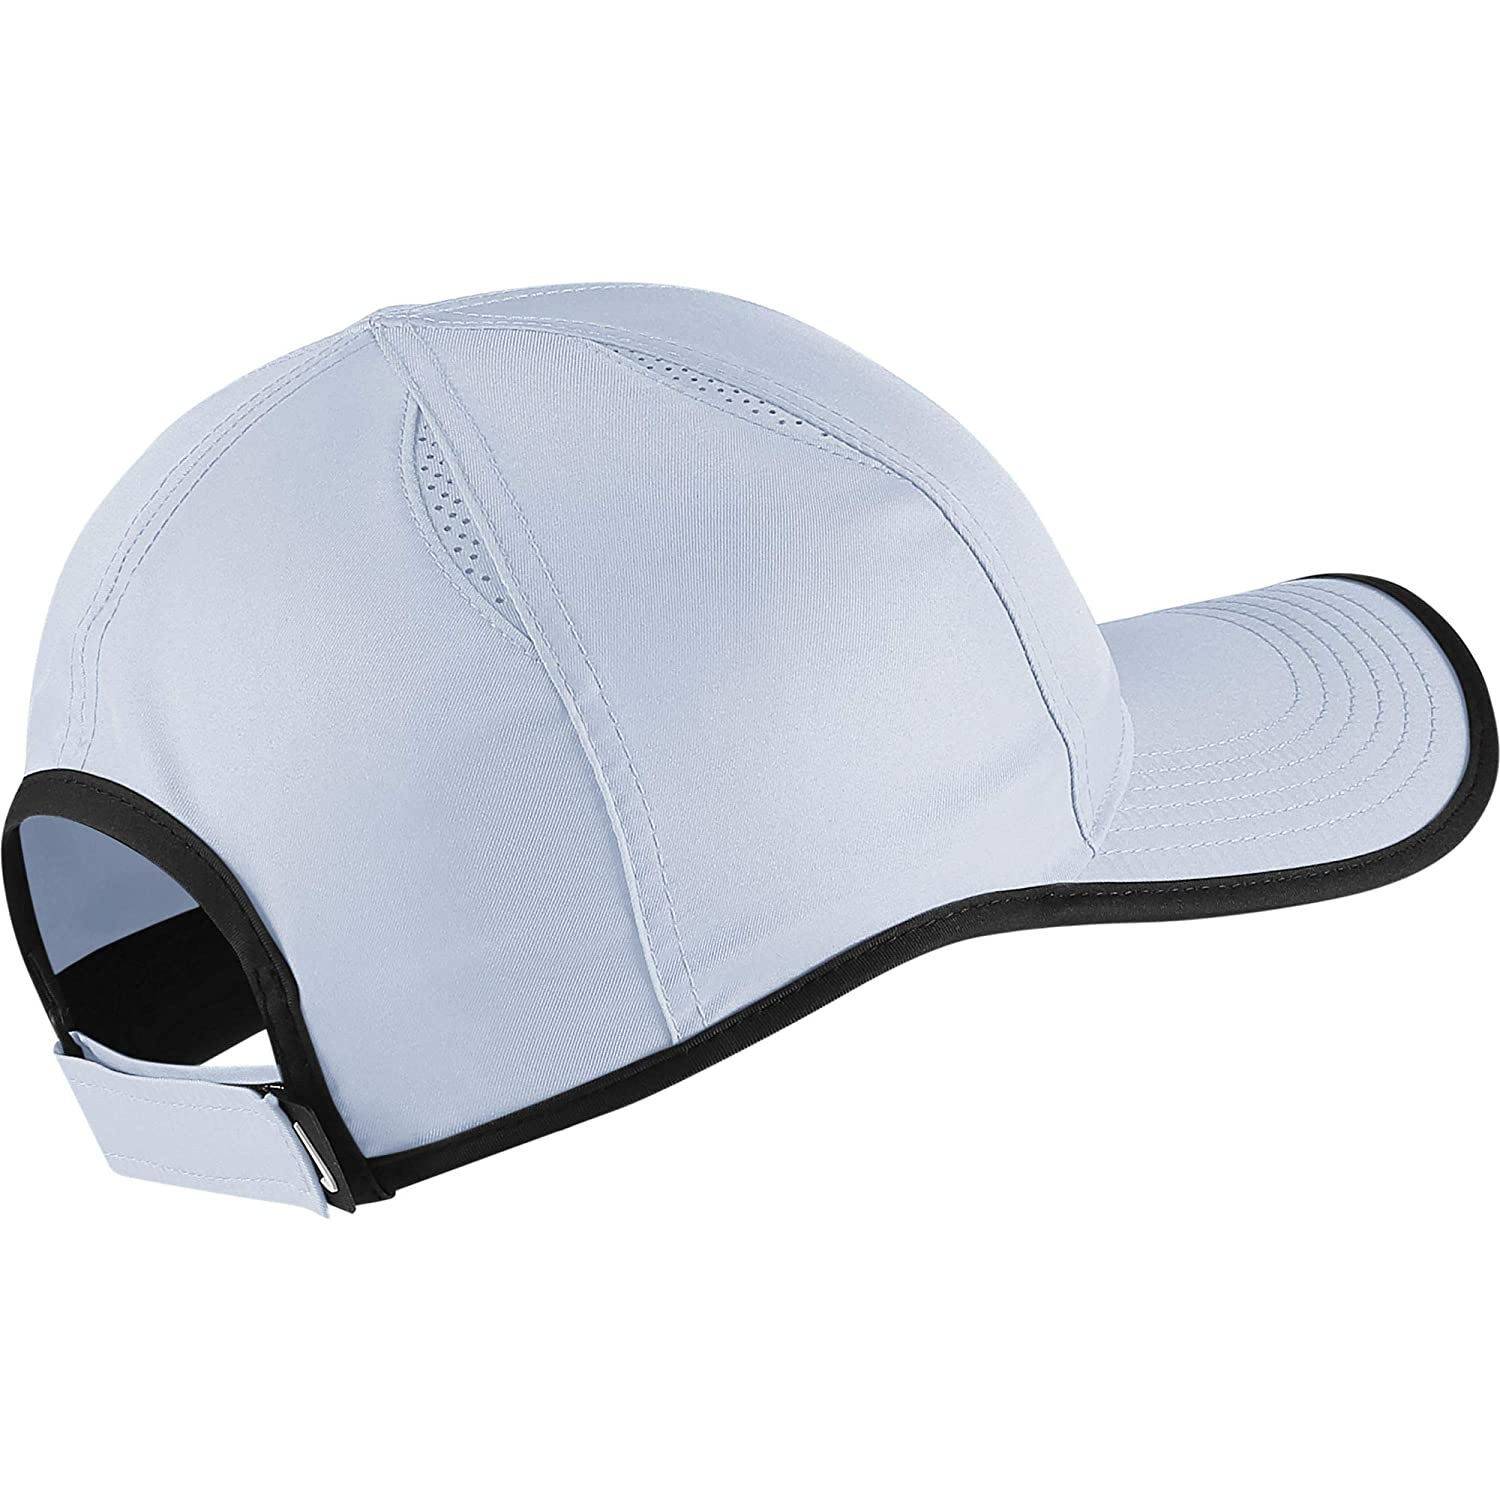 promo code ca92b a88cf Nike Men s Court Featherlight Tennis Cap, Half Blue Black, One size   Amazon.co.uk  Sports   Outdoors